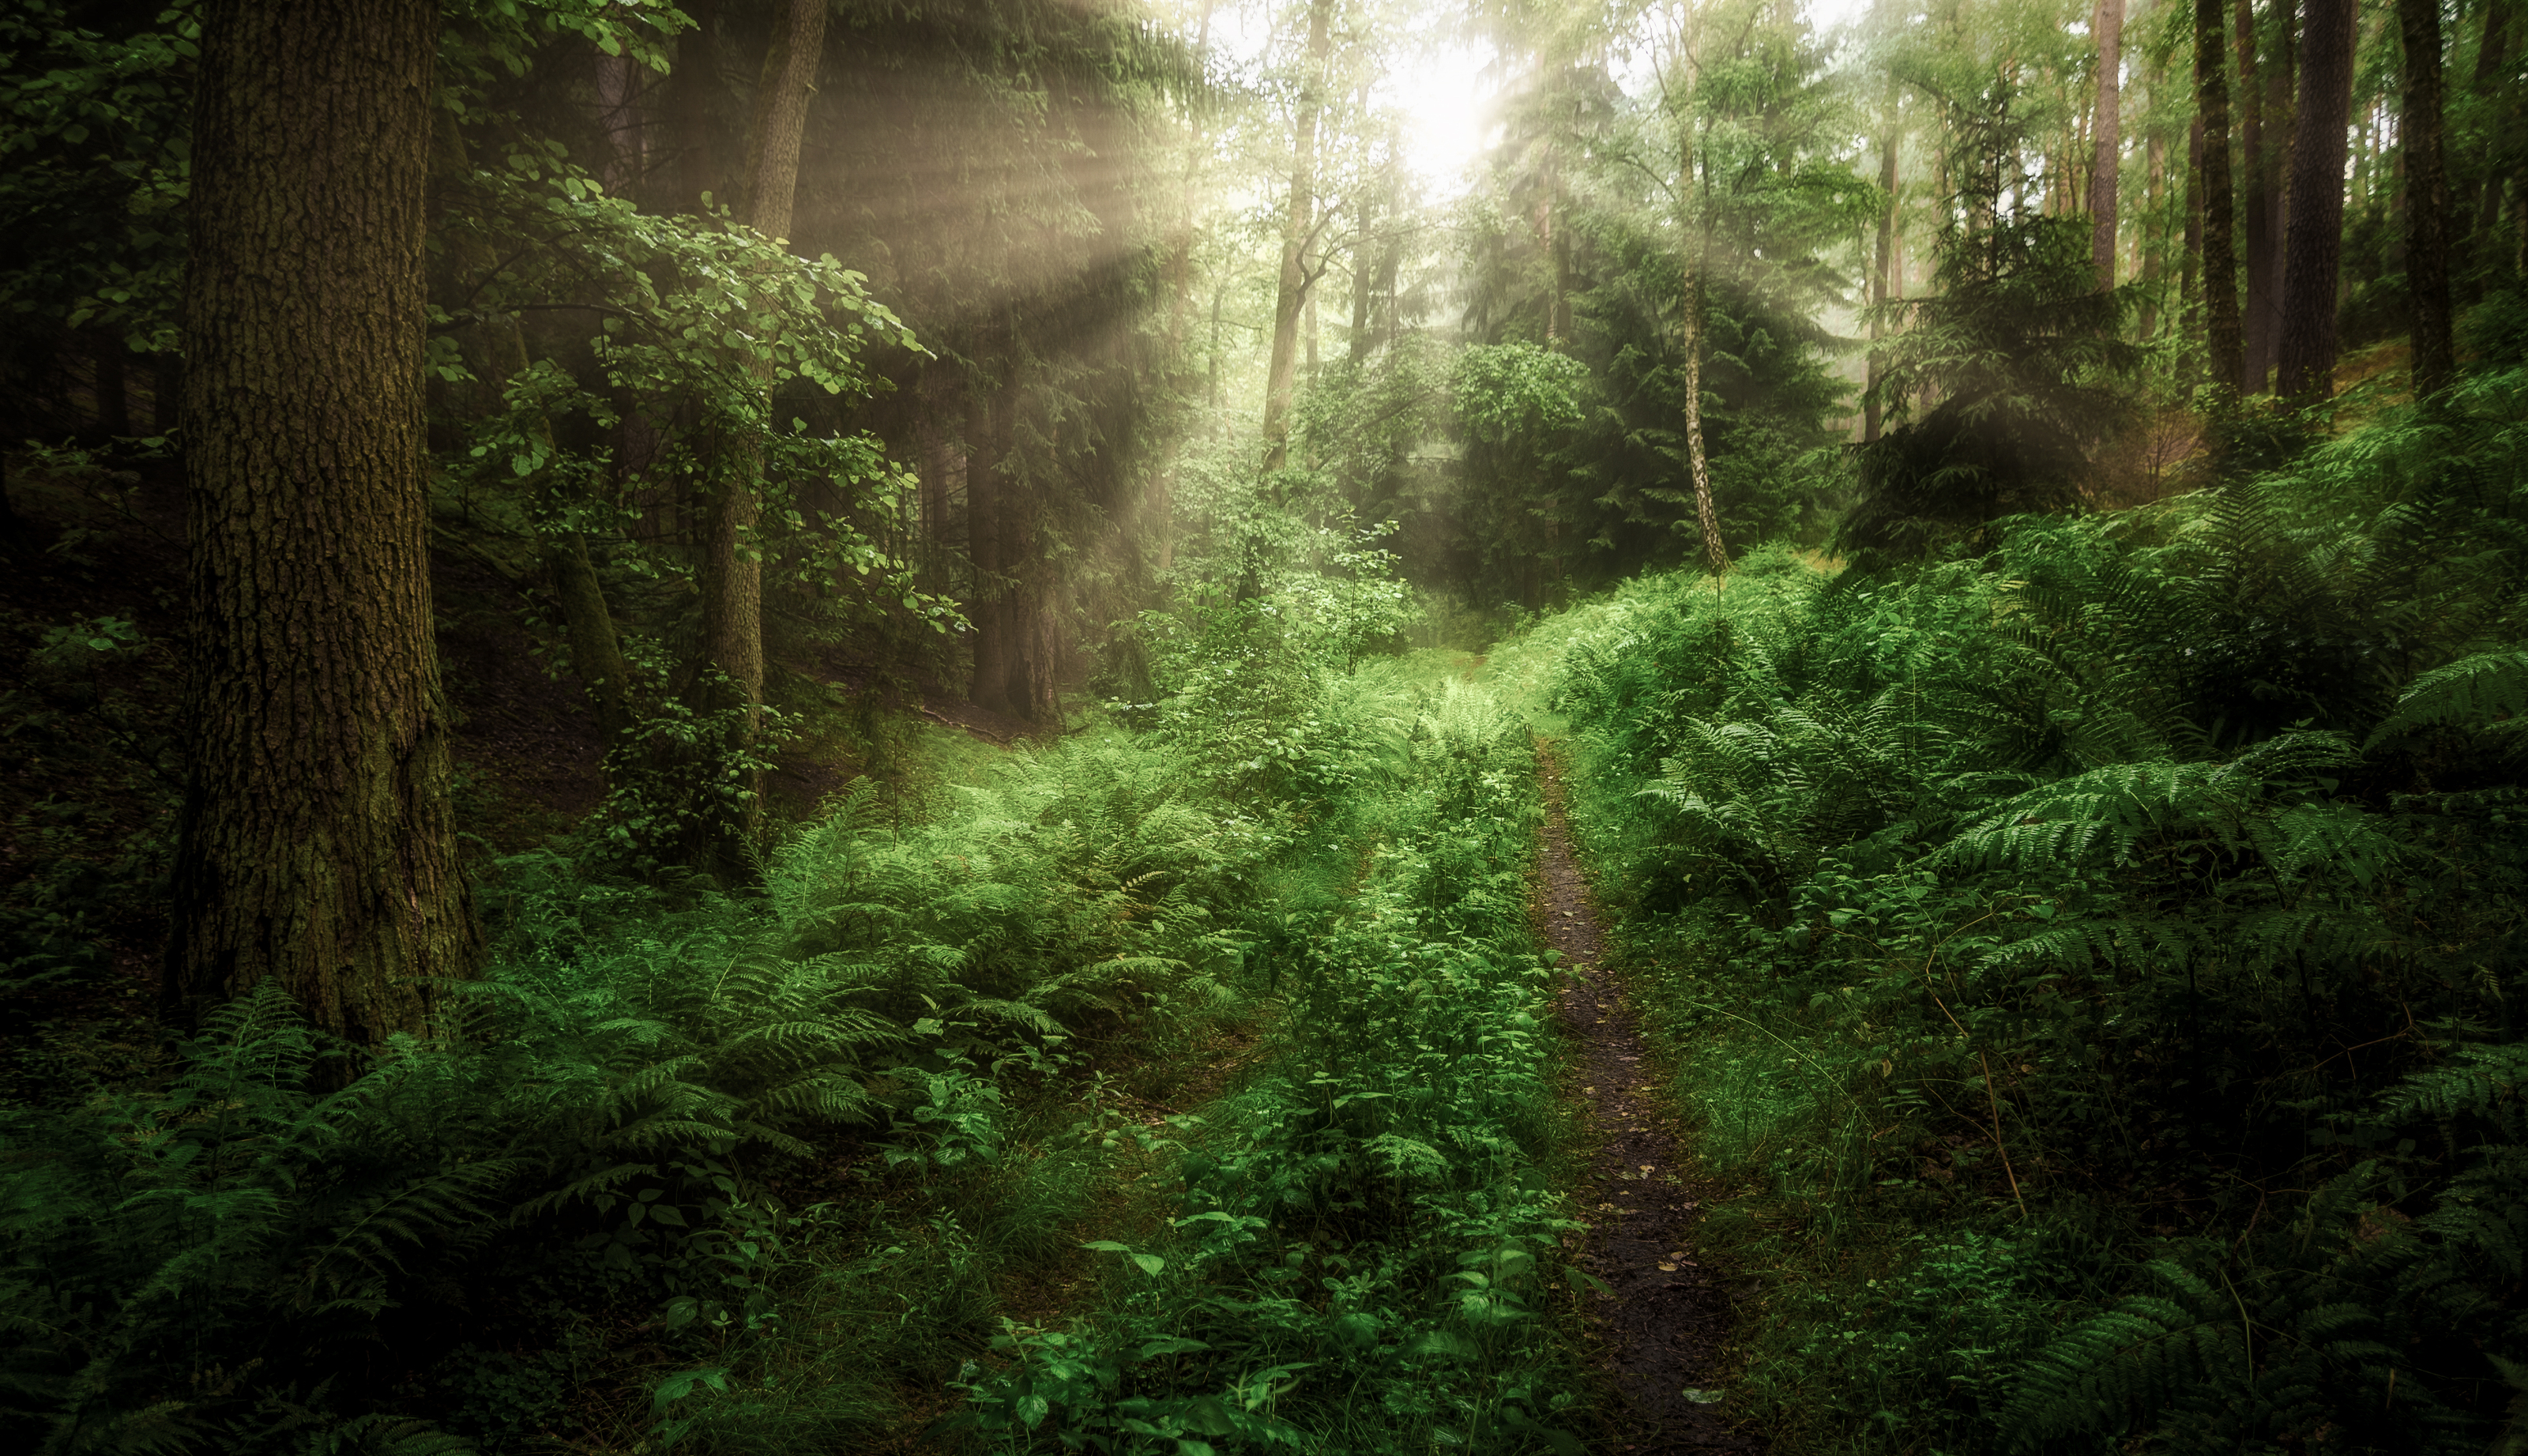 forest  trees  nature  morning  atmosphere  light  nikon  summer  stream  green  moss  ferns  woodland  deep in the forest, Tollas Krzysztof